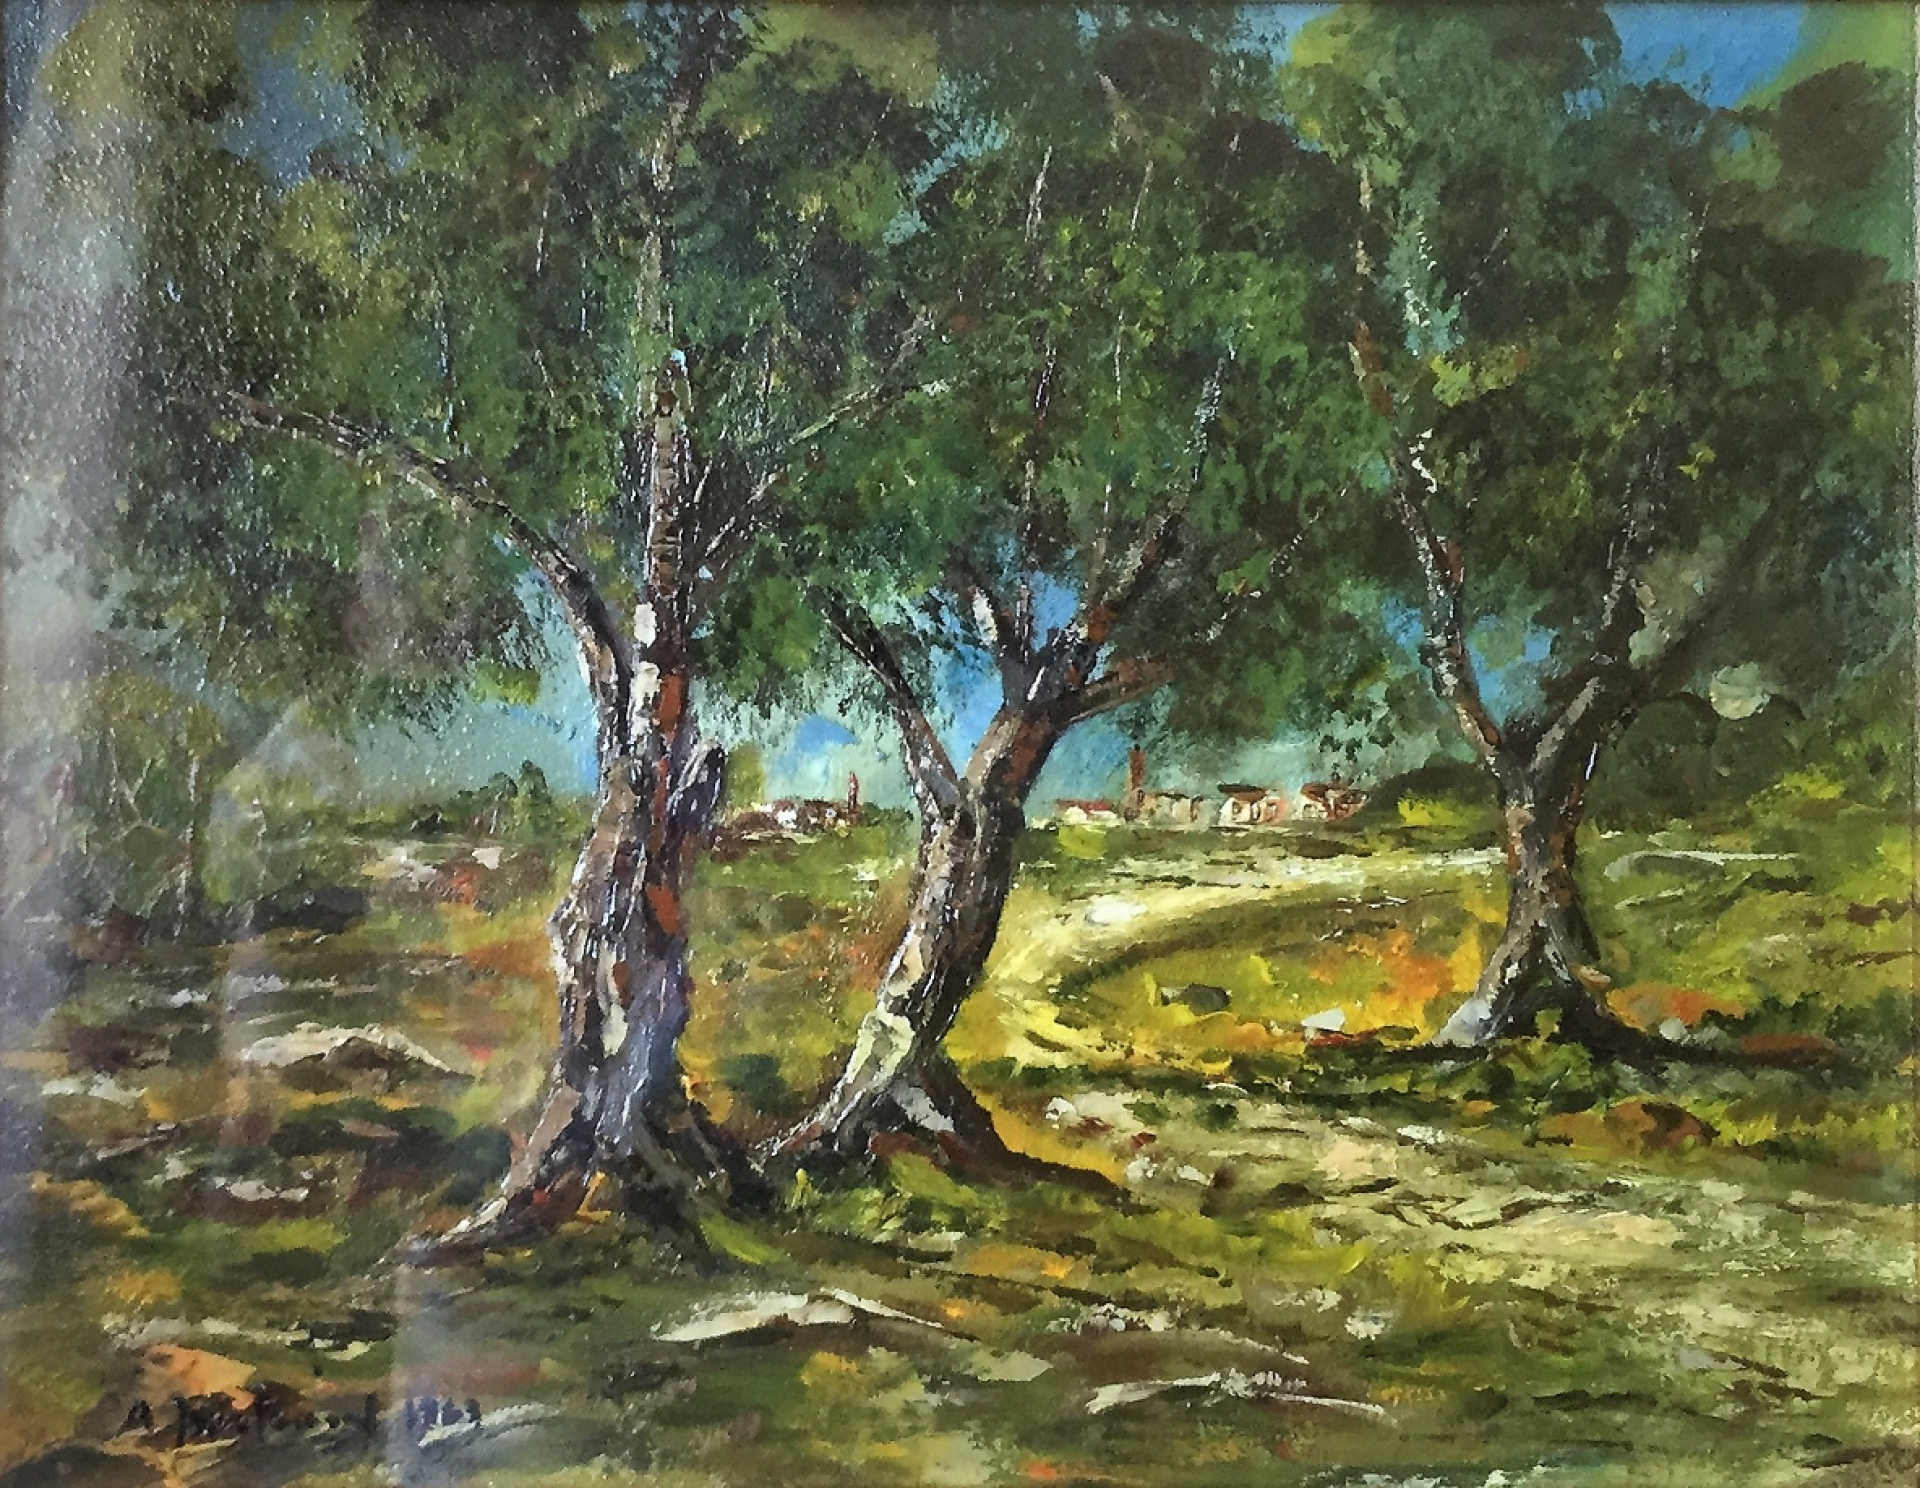 Quadro Boschetto Olio su masonite - Amleto Bertrand